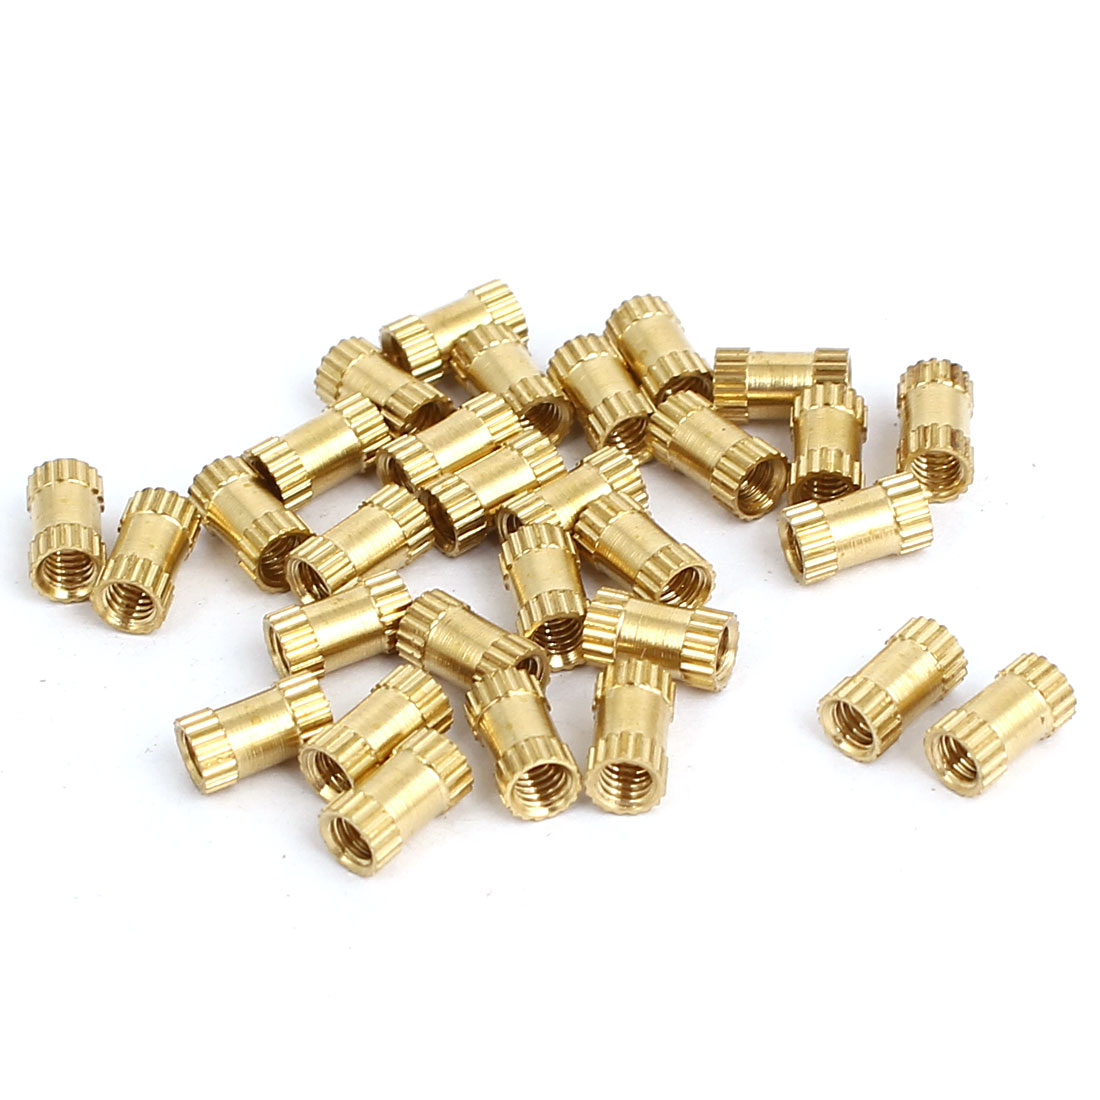 M2.5x6mmx3.5mm Female Threaded Brass Knurled Insert Embedded Nuts Gold Tone 30pcs